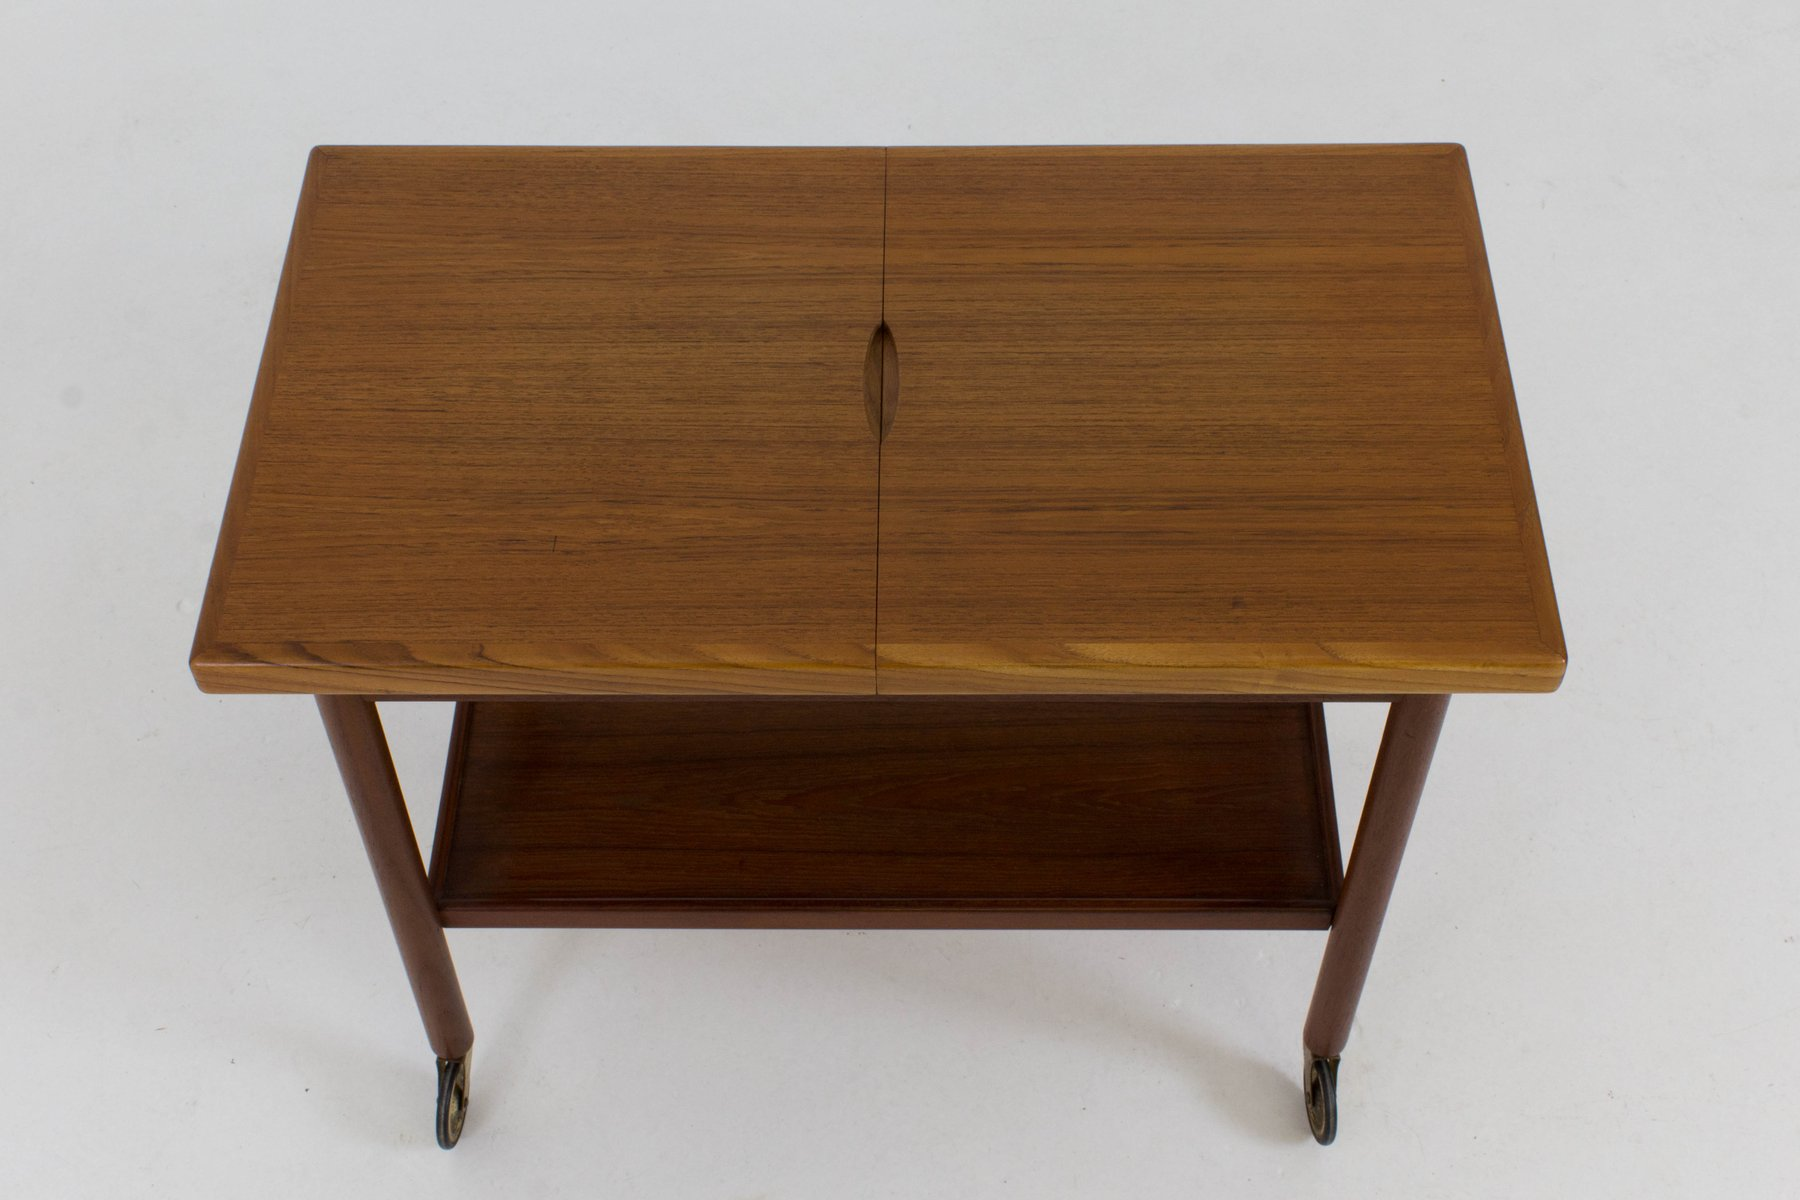 Outdoor buffet table serving cart as well century modern console table - Outdoor Buffet Table Serving Cart As Well Century Modern Console Table Danish Mid Century Serving Download